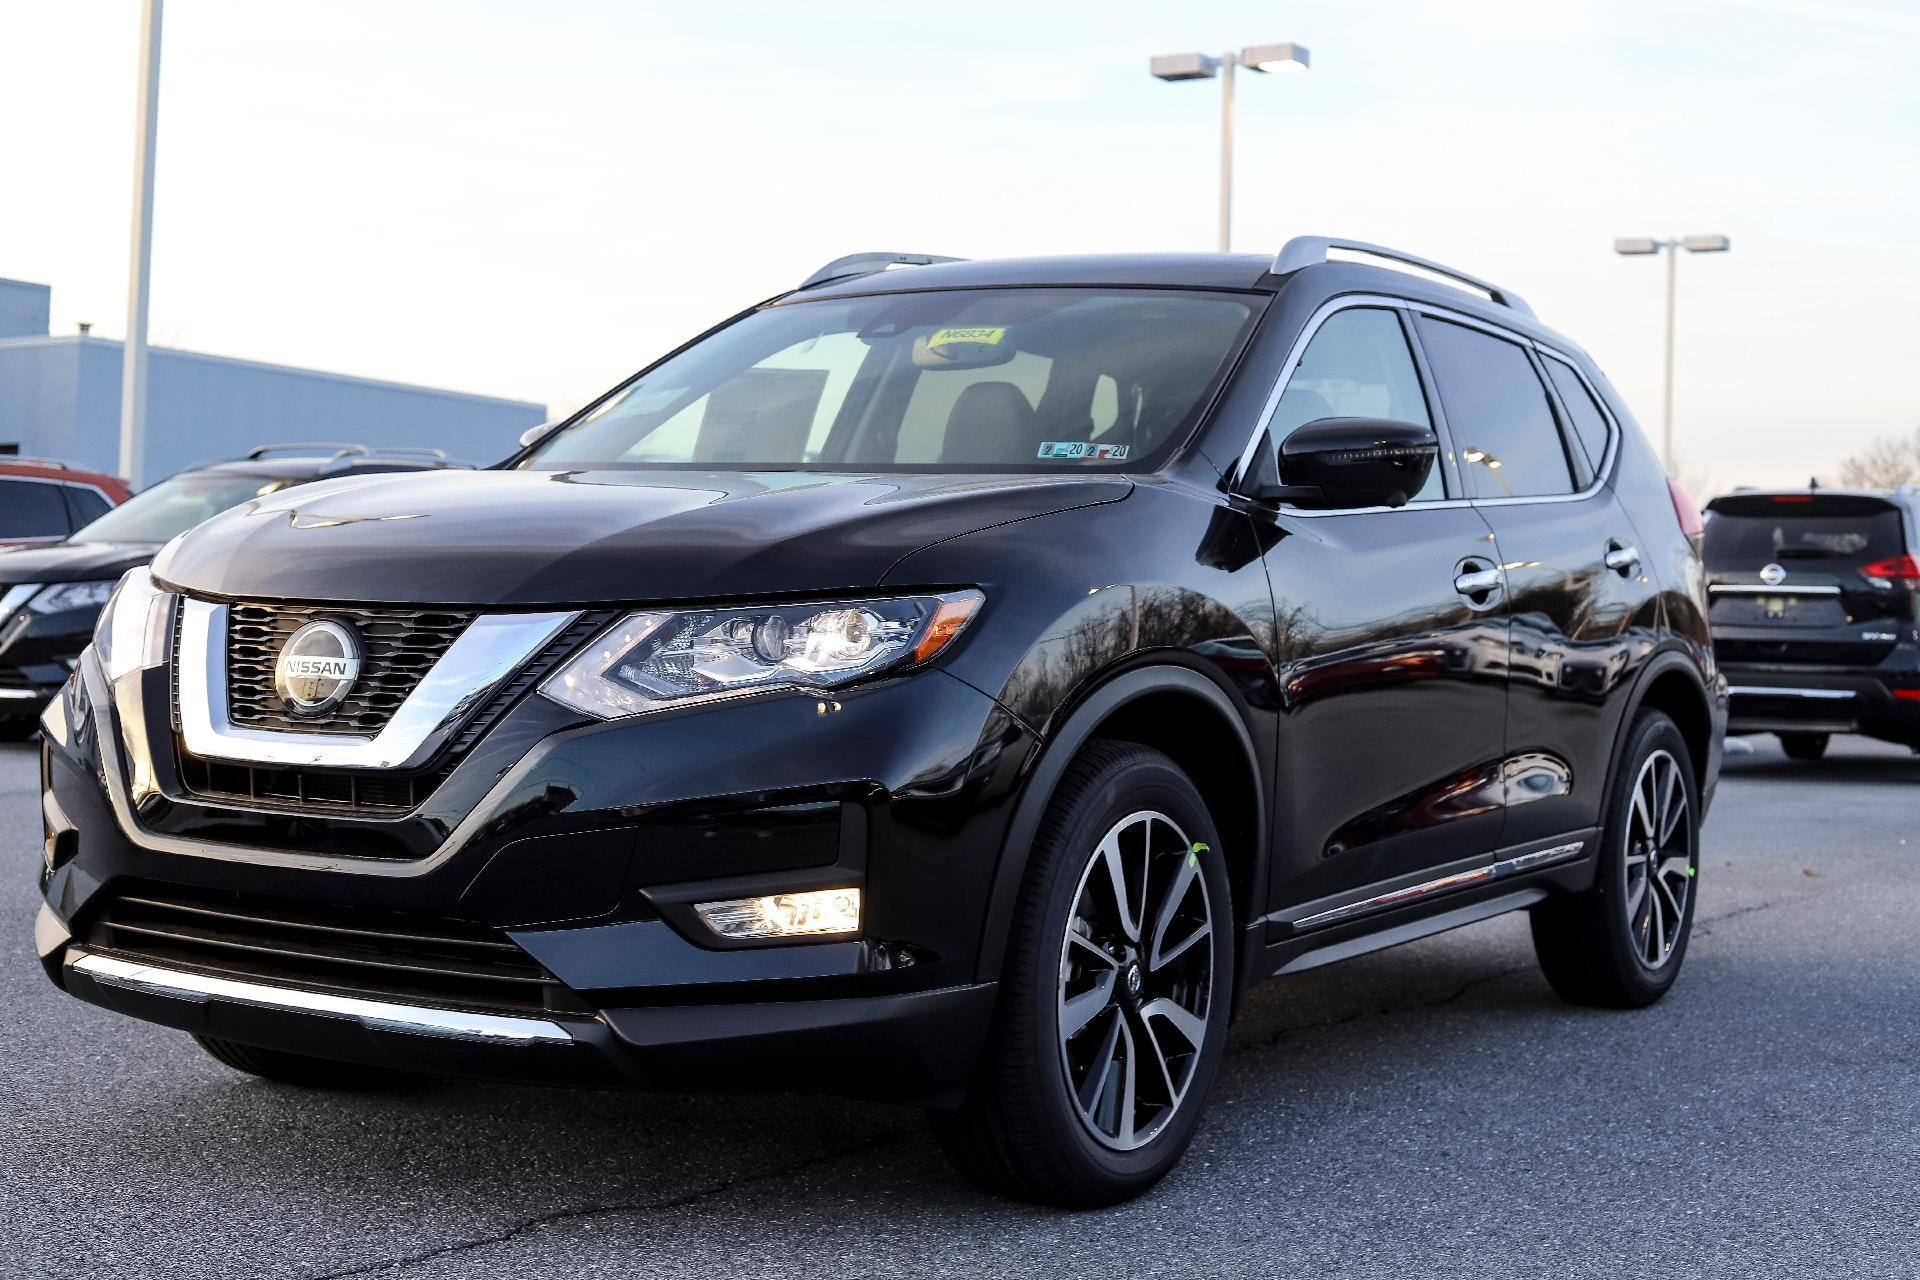 New 2021 Nissan Rogue S S for sale $26,370 at M and V Leasing in Brooklyn NY 11223 1